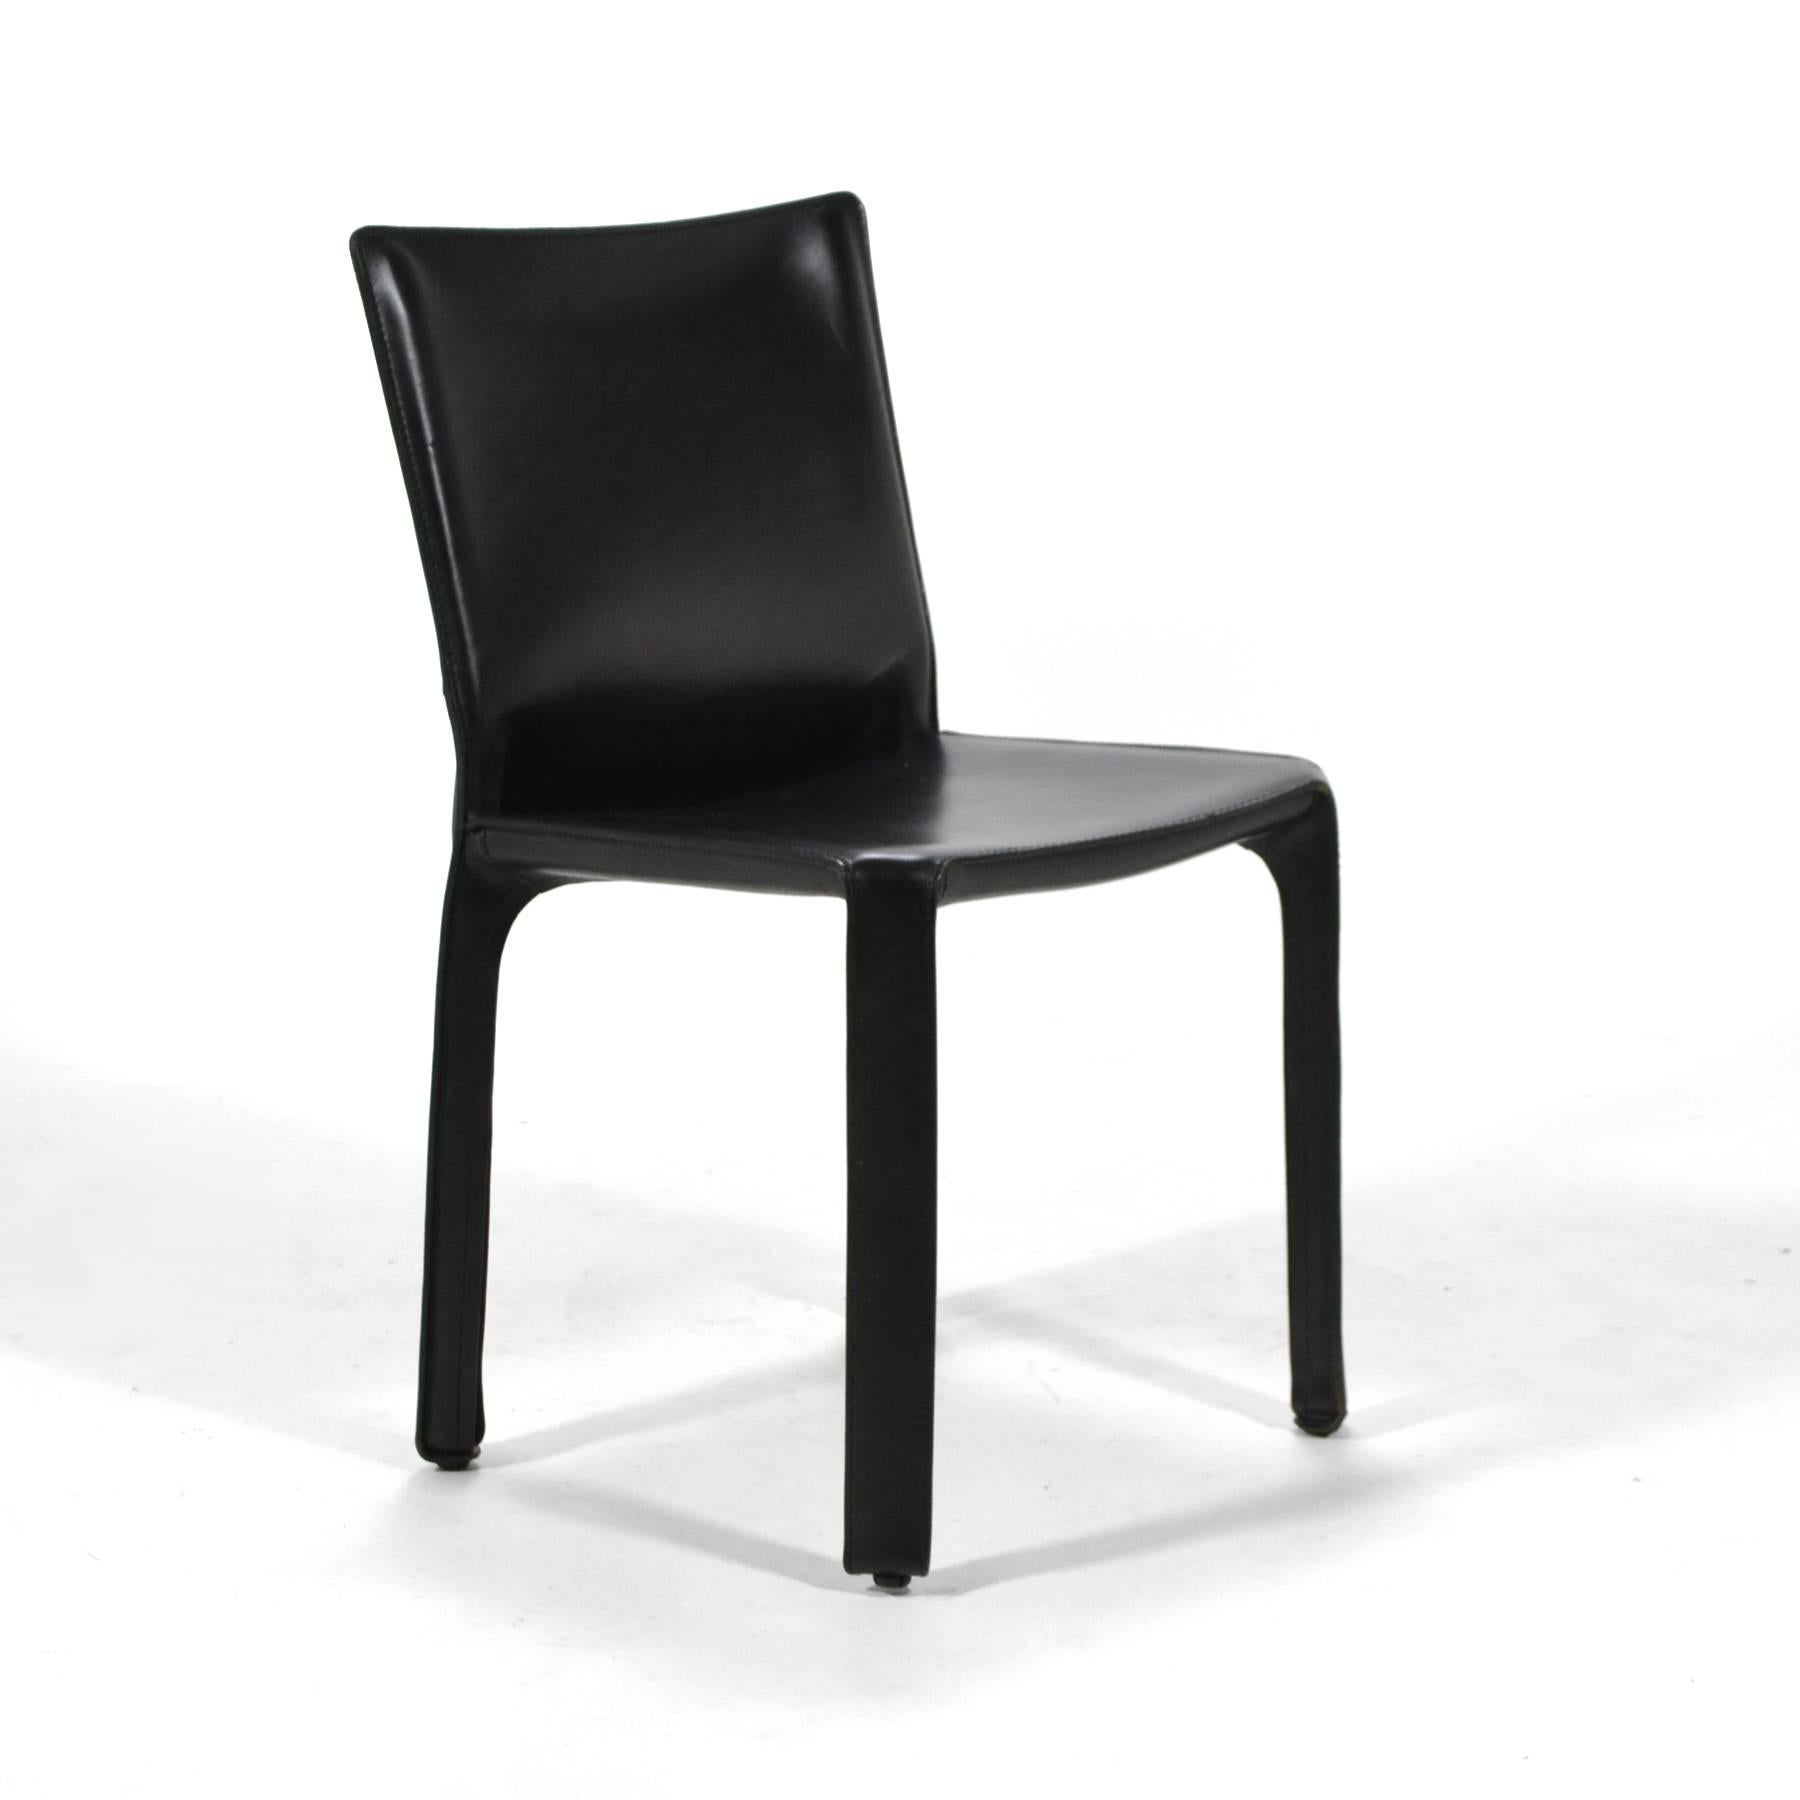 Mario Bellini Set Of Eight Model 412 Cab Chairs By Cassina At 1stdibs